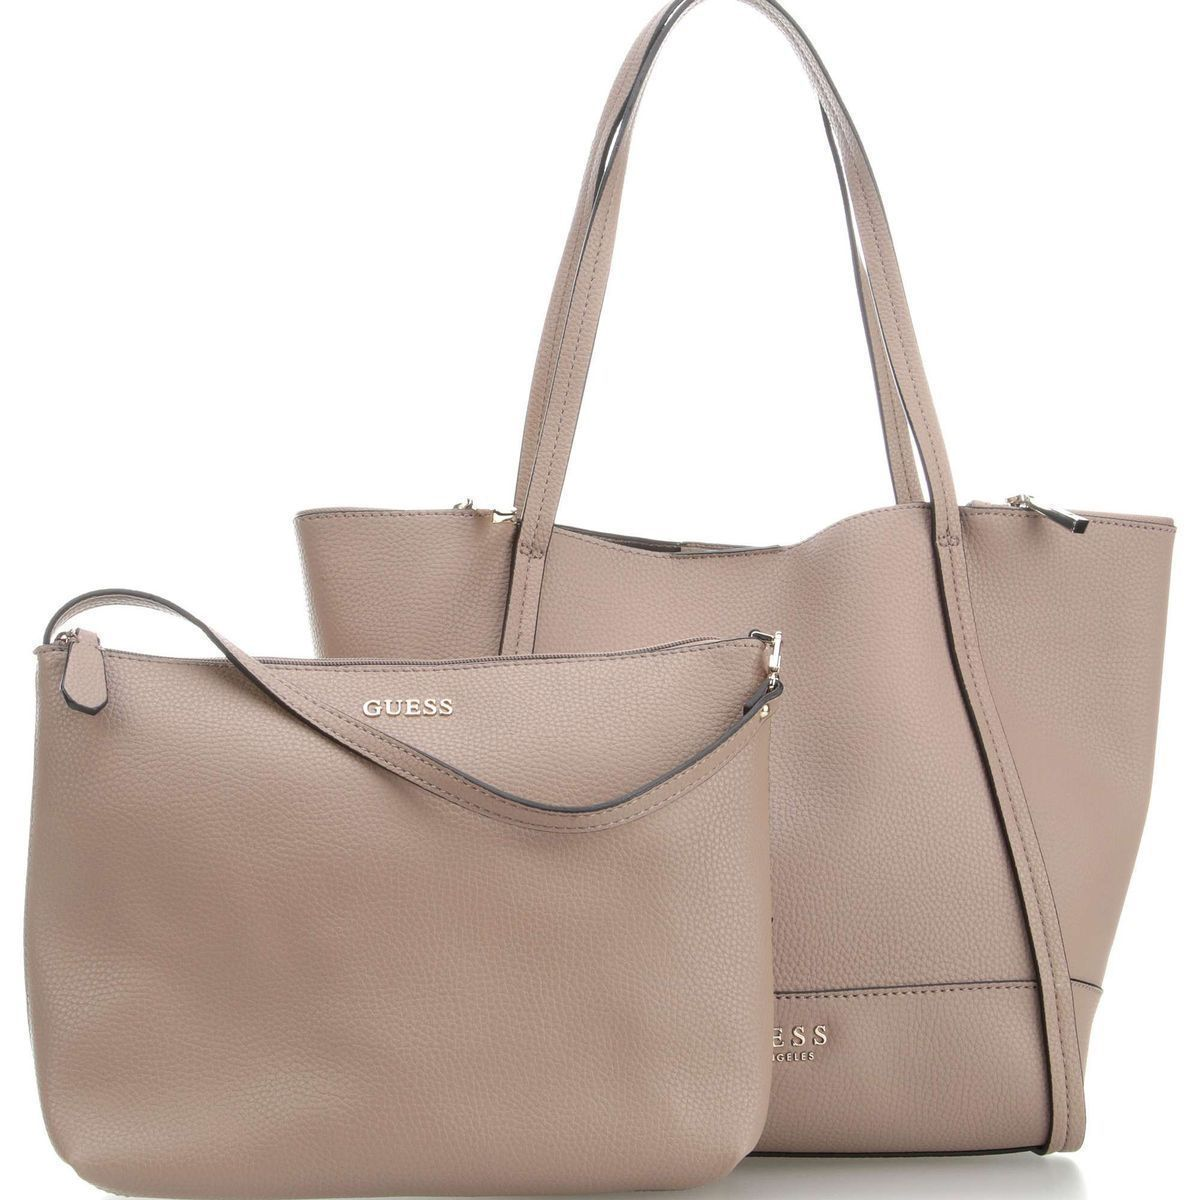 Guess femme heidi tote taupe1120001_3